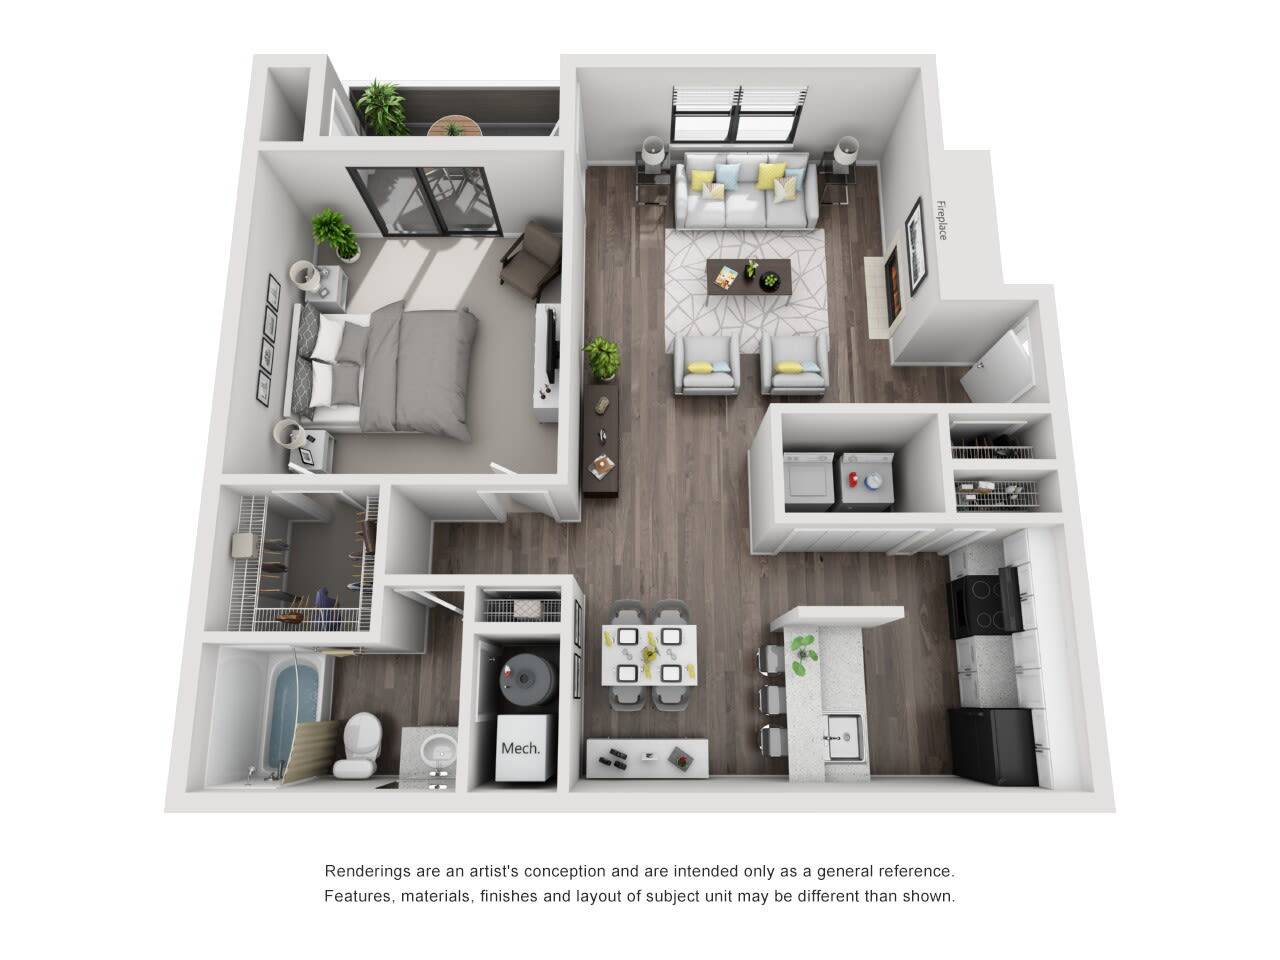 A5 1 bed 1 bath at The Alcove